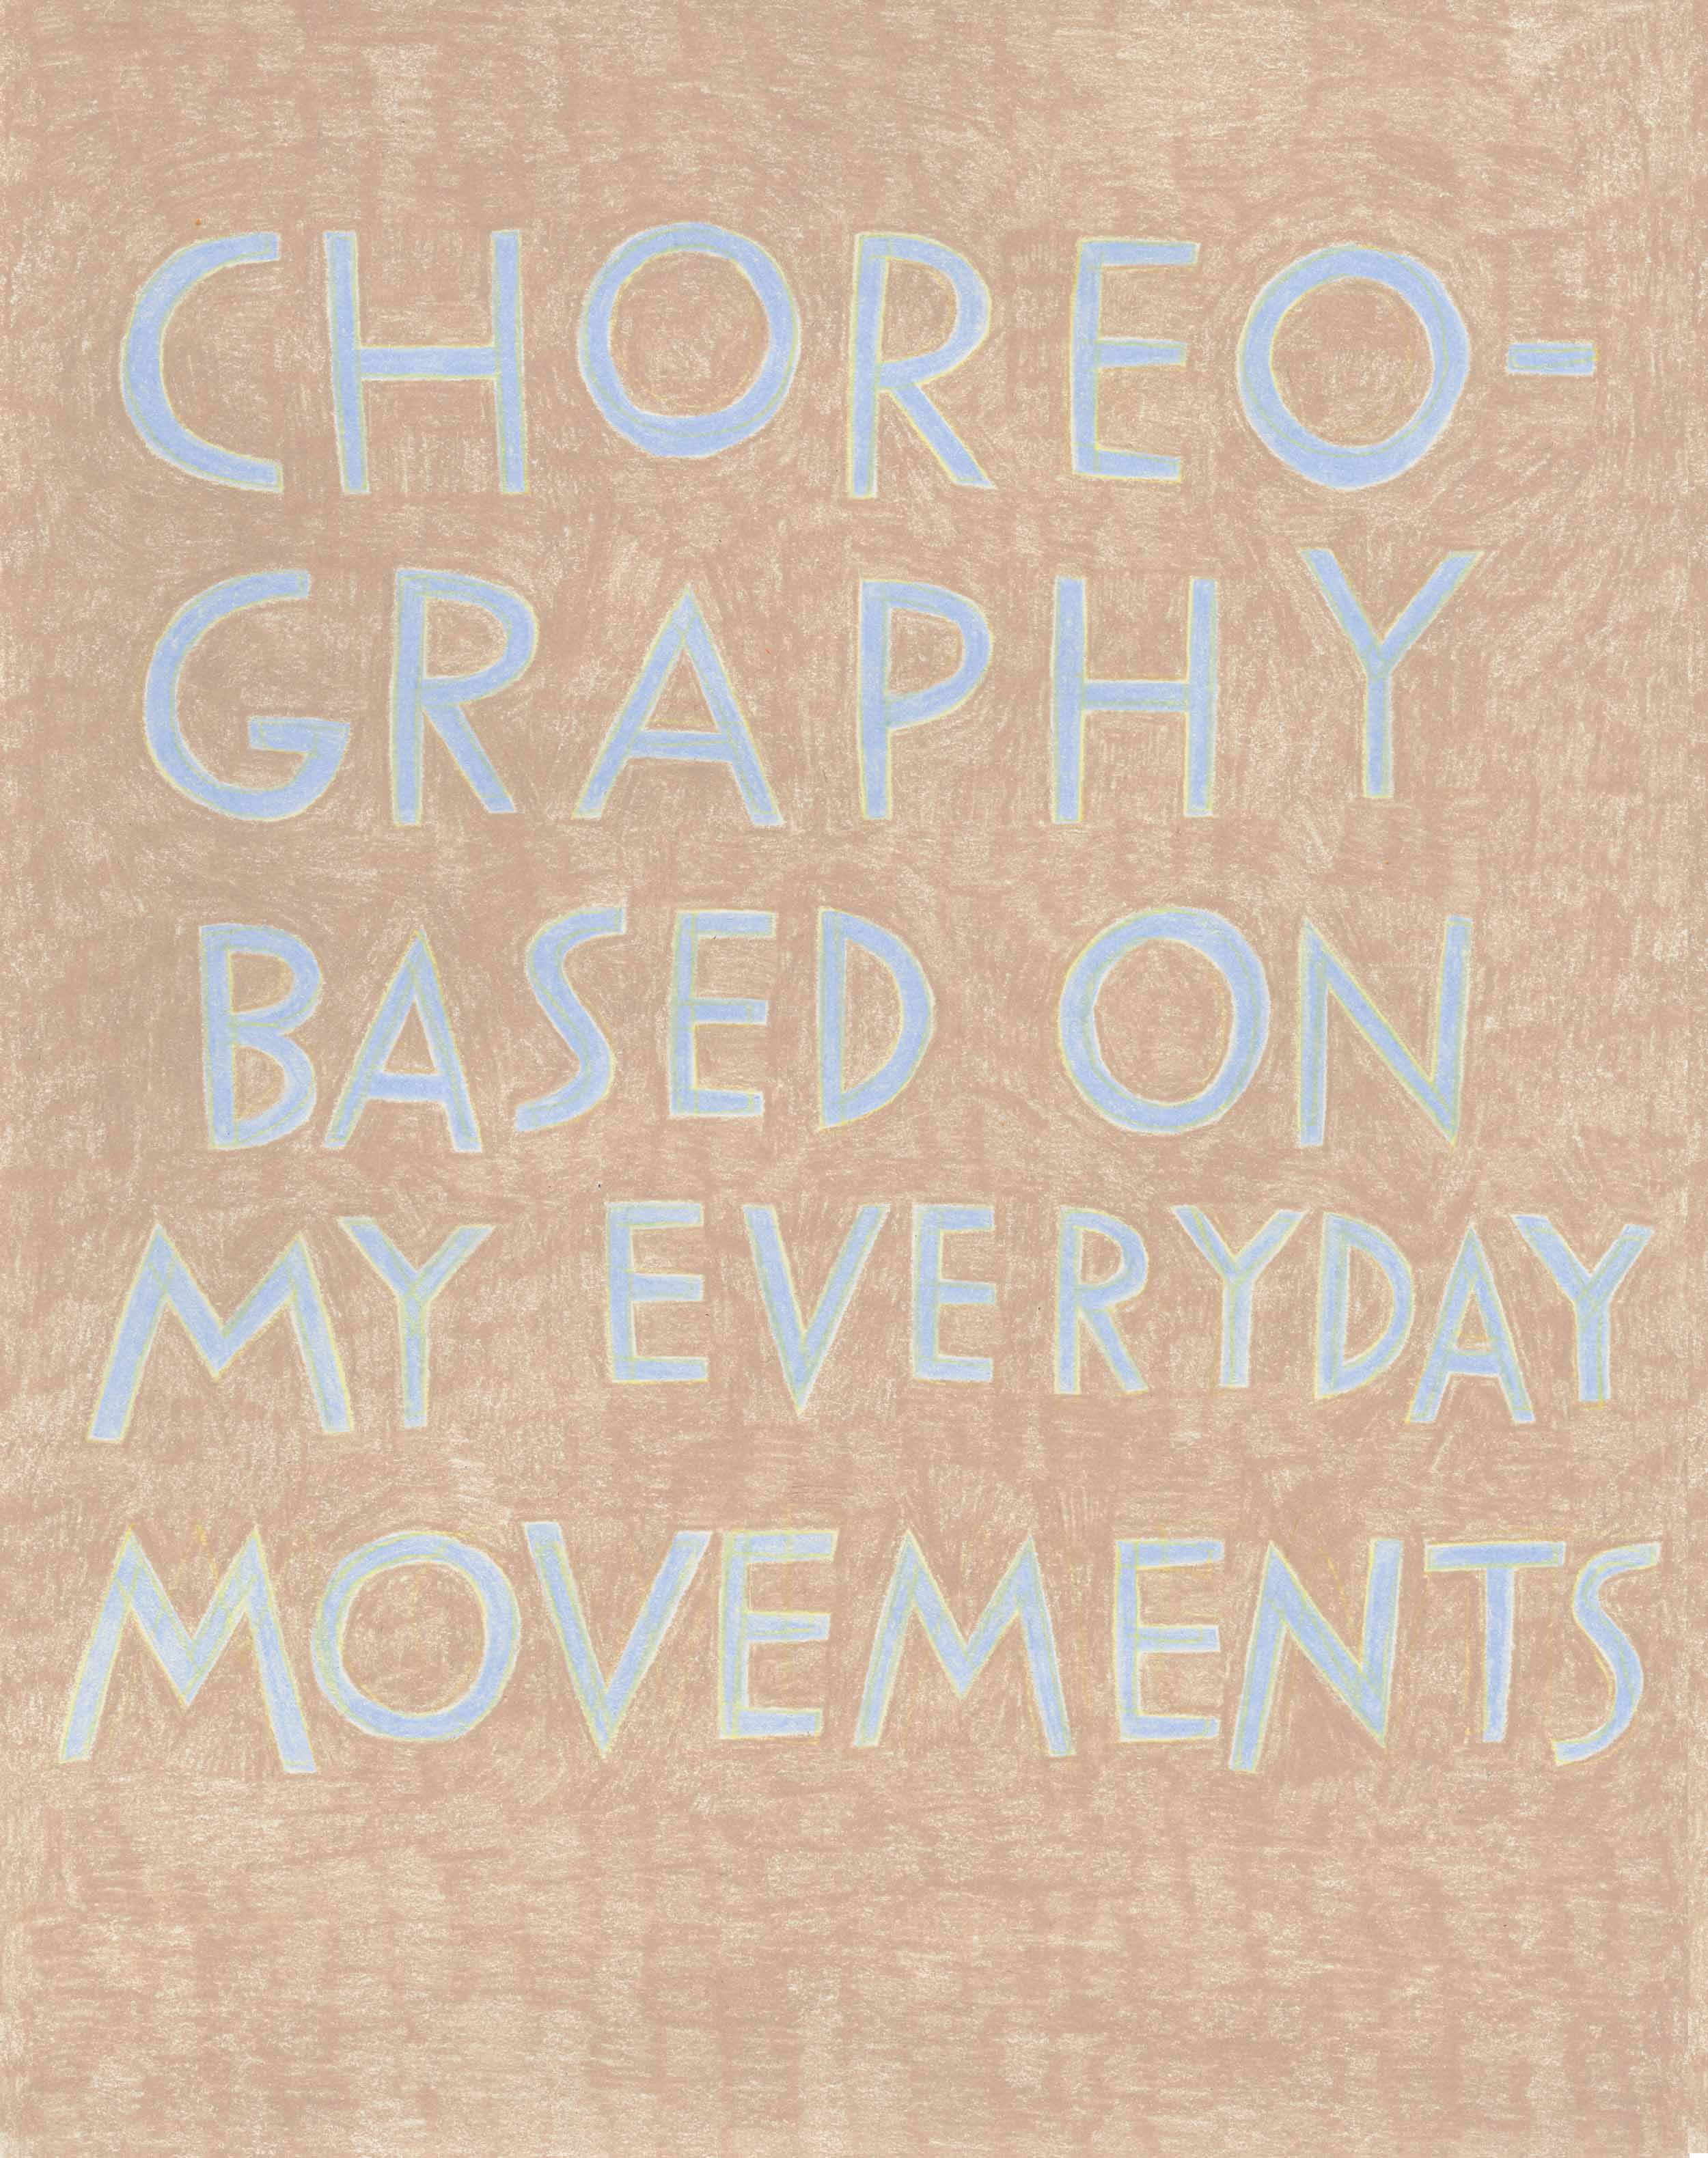 """""""Choreography based on my everyday movements,"""" in light blue on beige."""